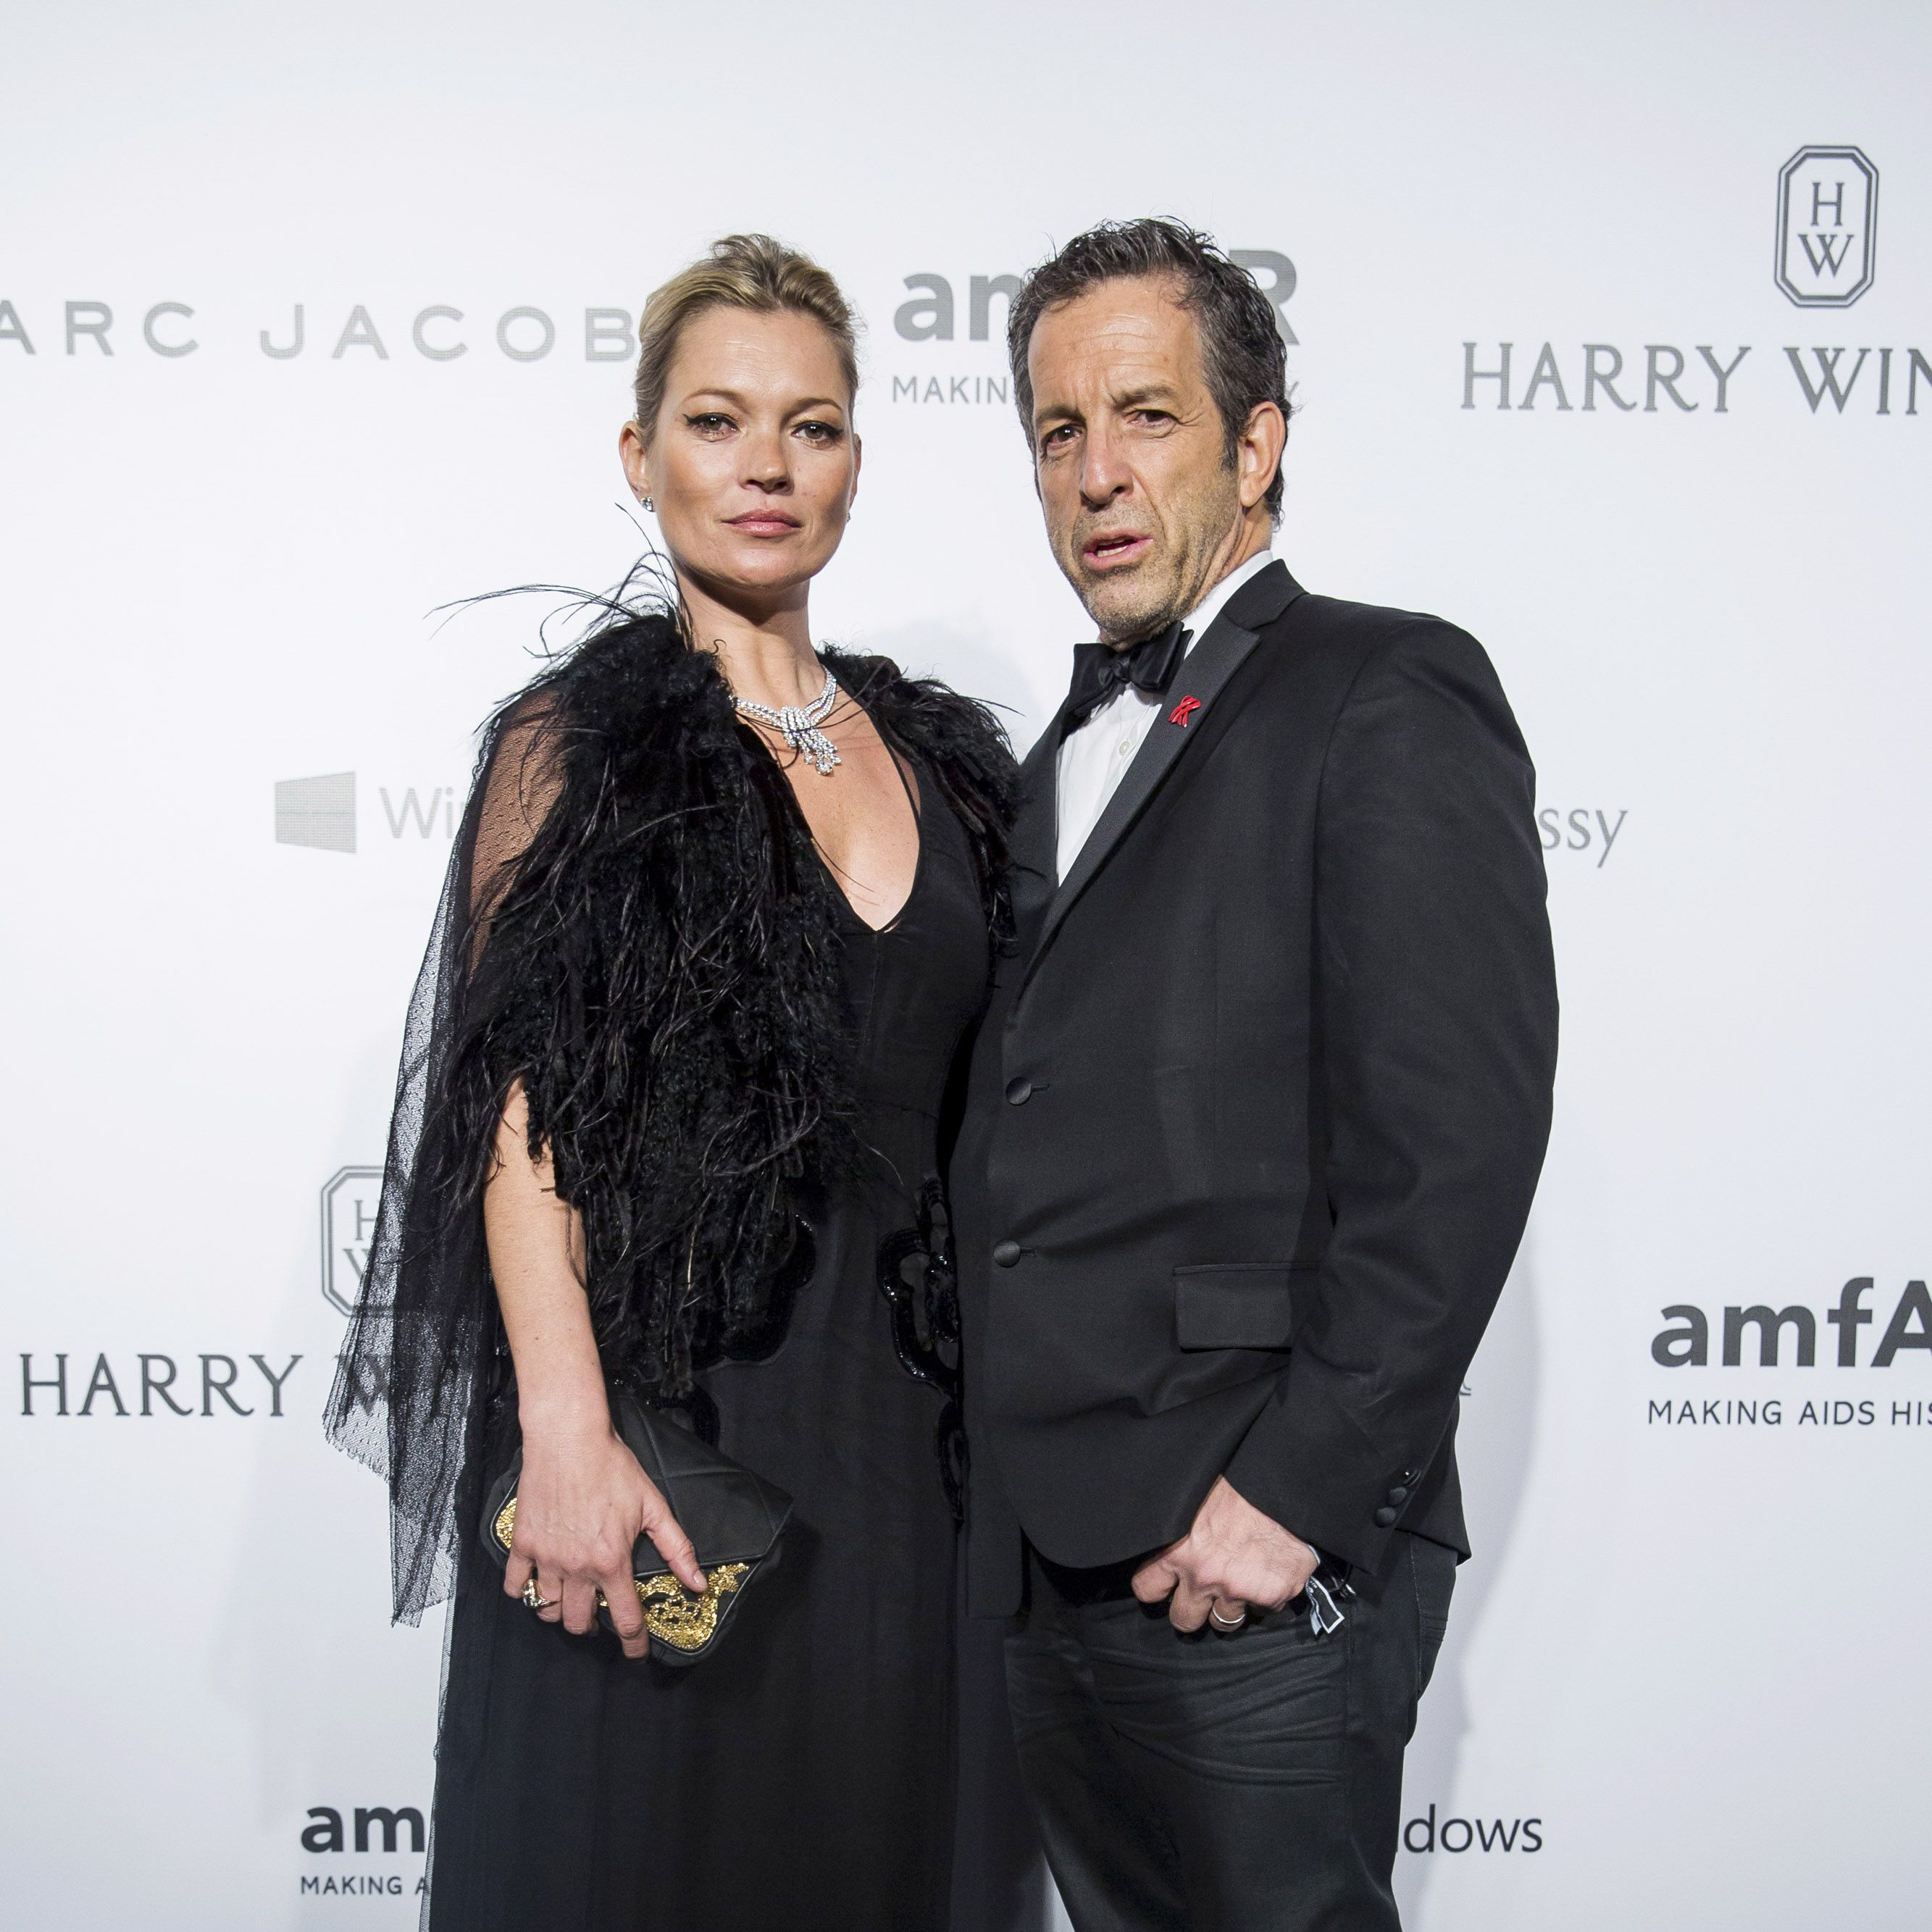 HONG KONG - MARCH 14:  Model Kate Moss (L) and Designer of amfAR and Chairman of the Board Kenneth Cole arrive on the red carpet during the 2015 amfAR Hong Kong gala at Shaw Studios on March 14, 2015 in Hong Kong.  (Photo by Jerome Favre/Getty Images)